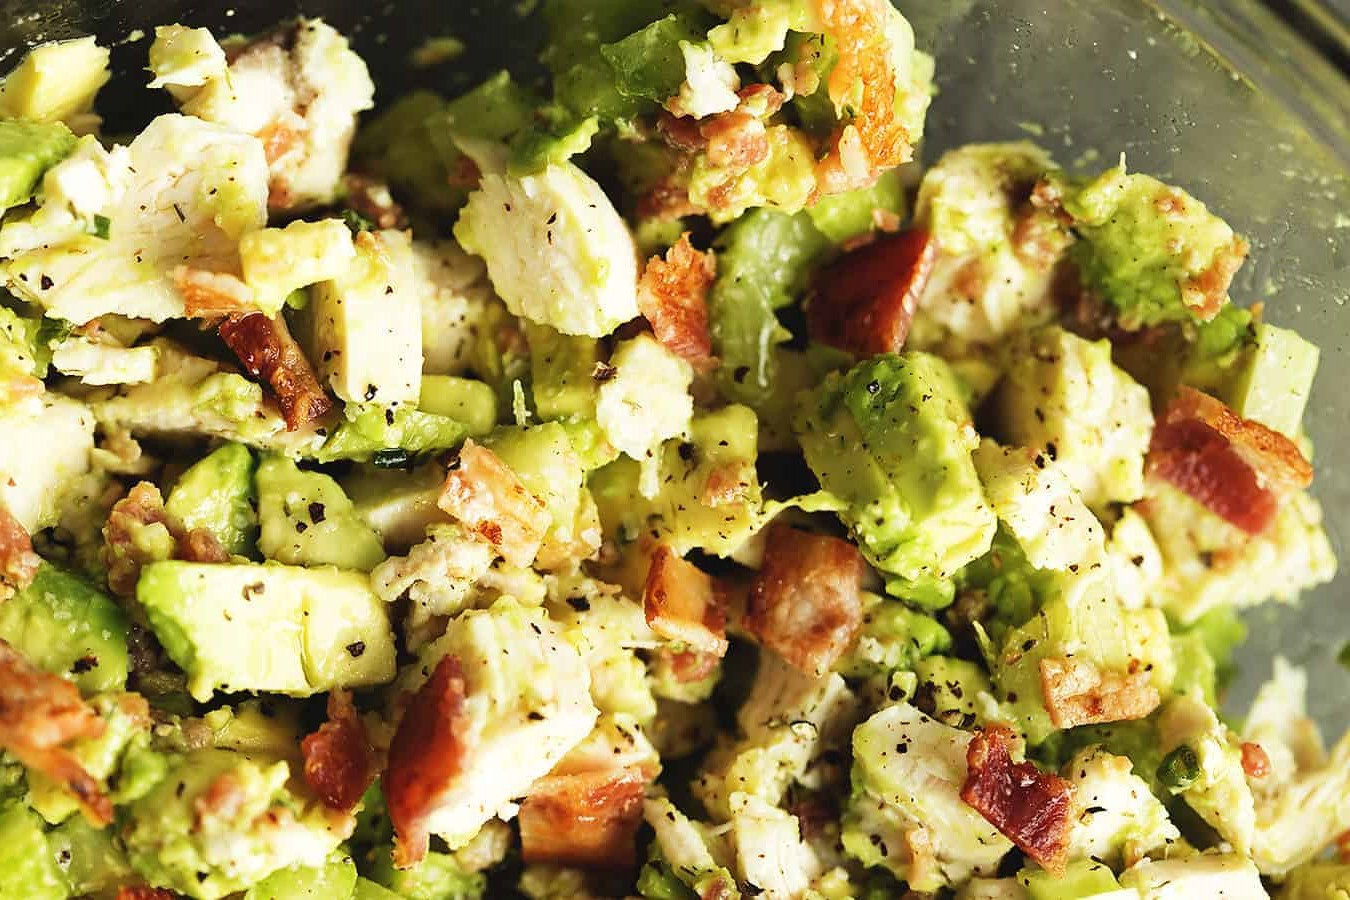 Keto salad with chicken and bacon